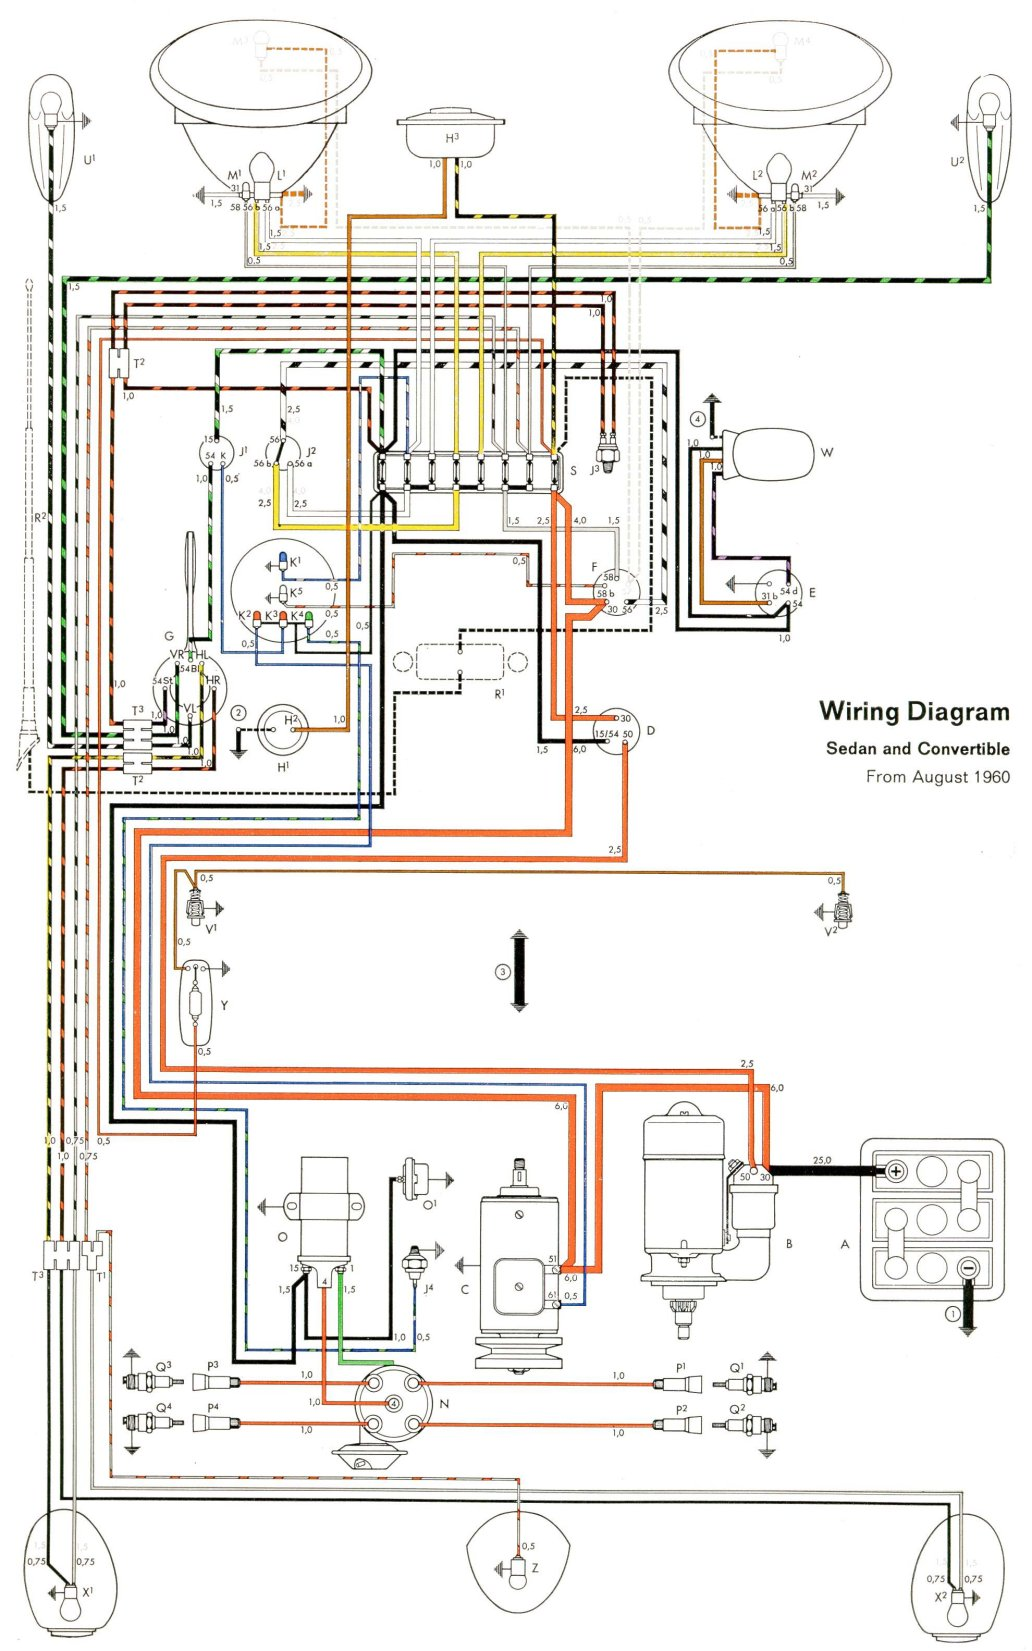 thesamba com type 1 wiring diagrams rh thesamba com 1973 vw beetle wiring diagram 1974 vw bug wiring diagram